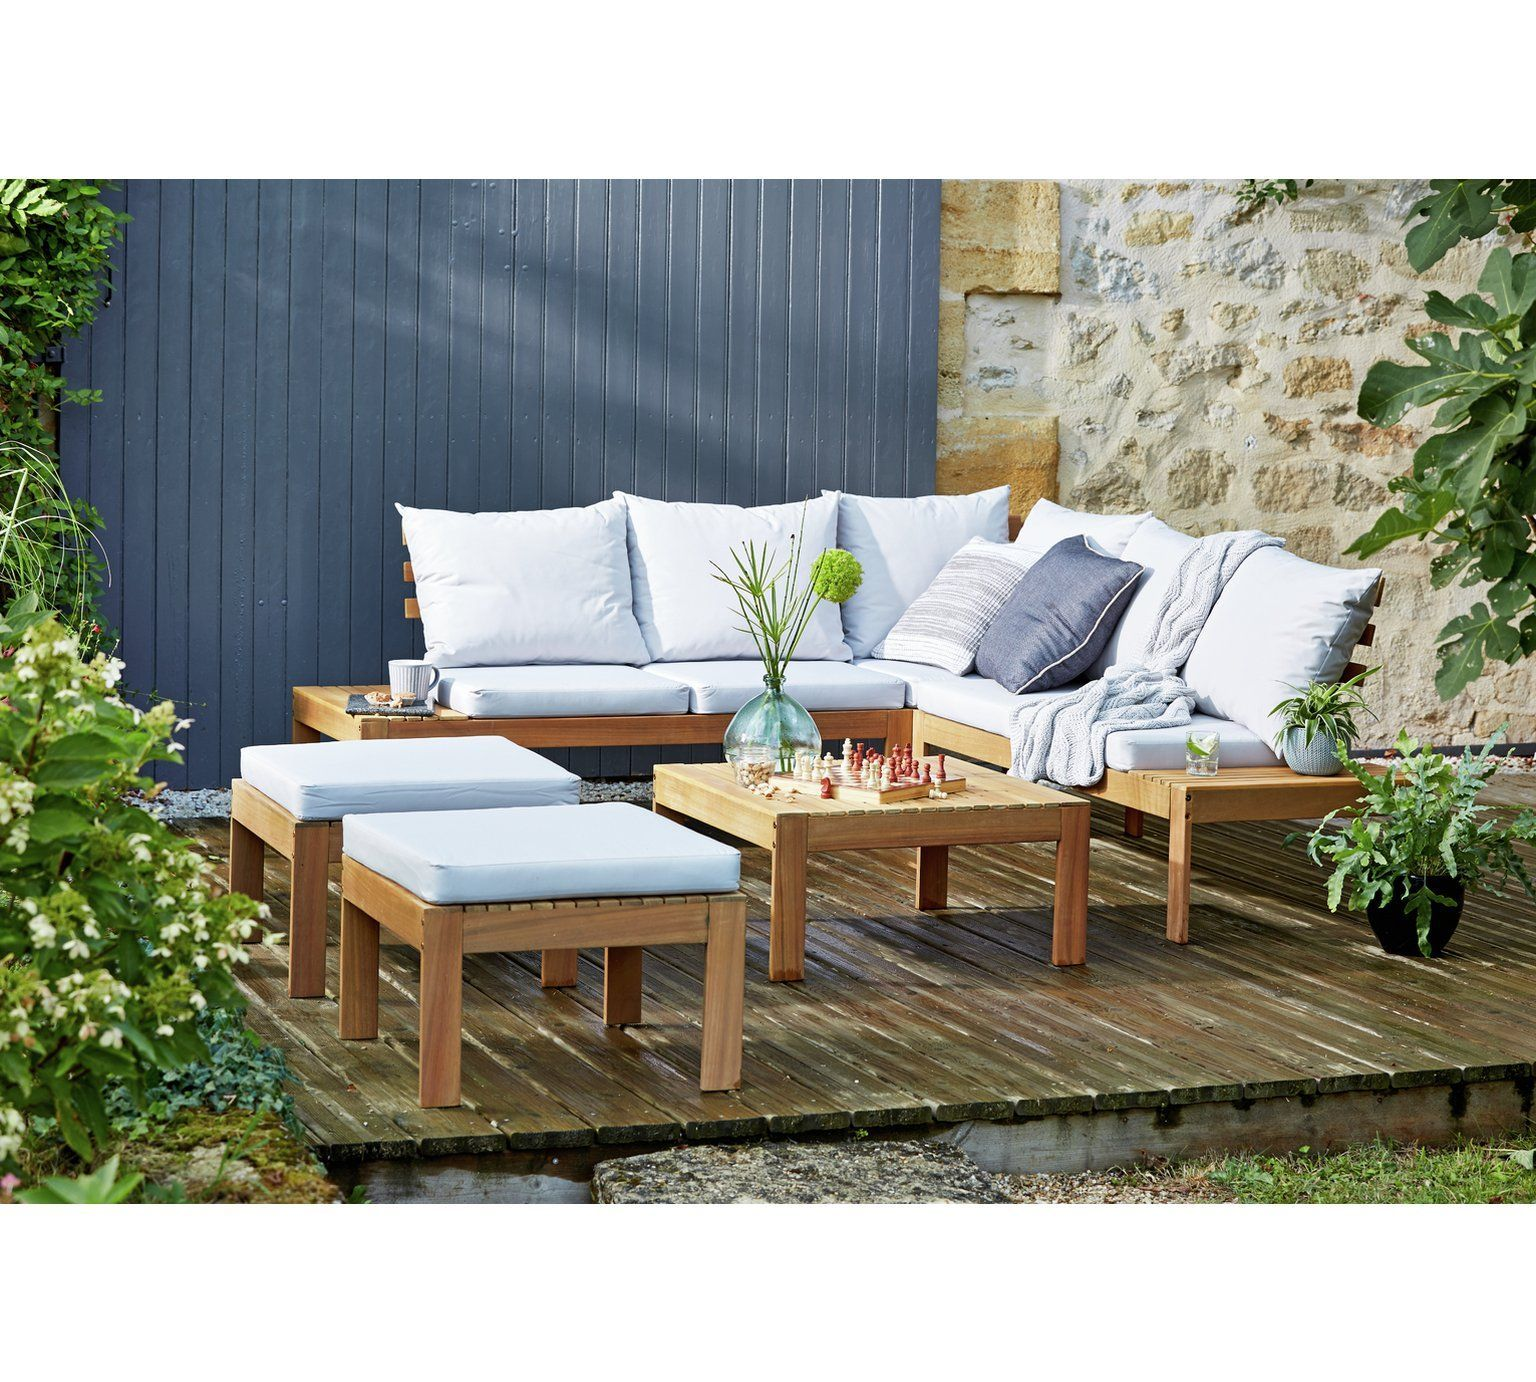 Perfect 20 Pics Wooden Garden Table And Chairs Argos And Description In 2020 Corner Sofa Set Corner Sofa Garden Garden Sofa Set